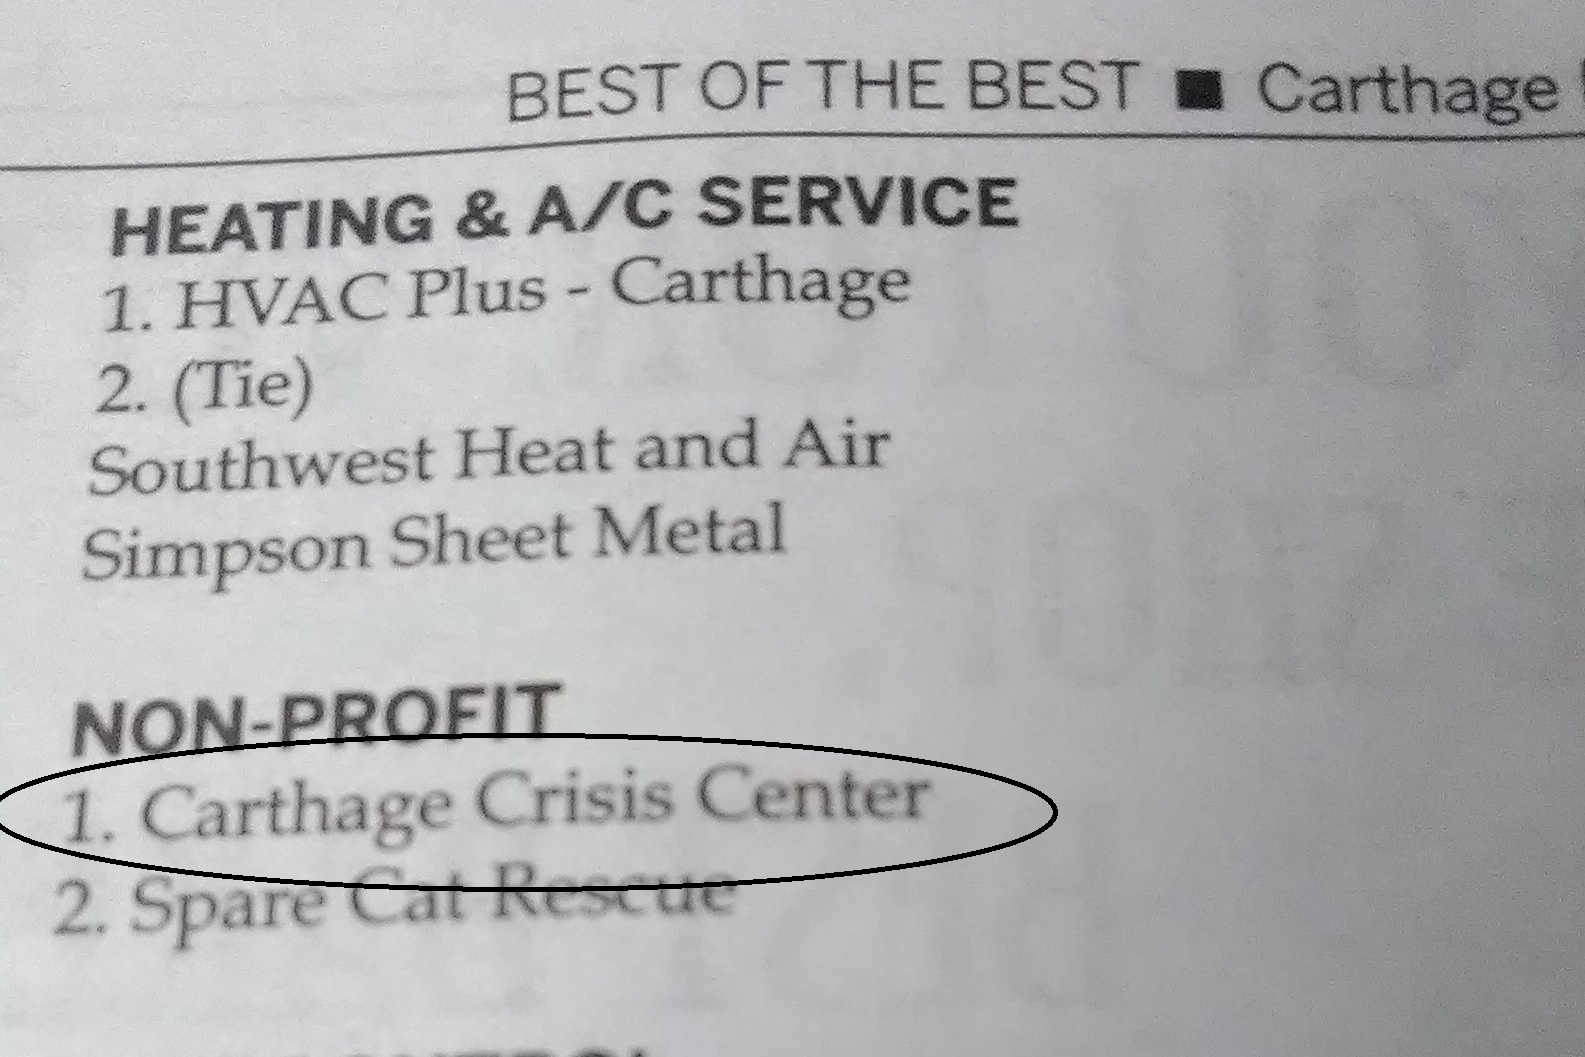 Carthage Press - Best of the Best